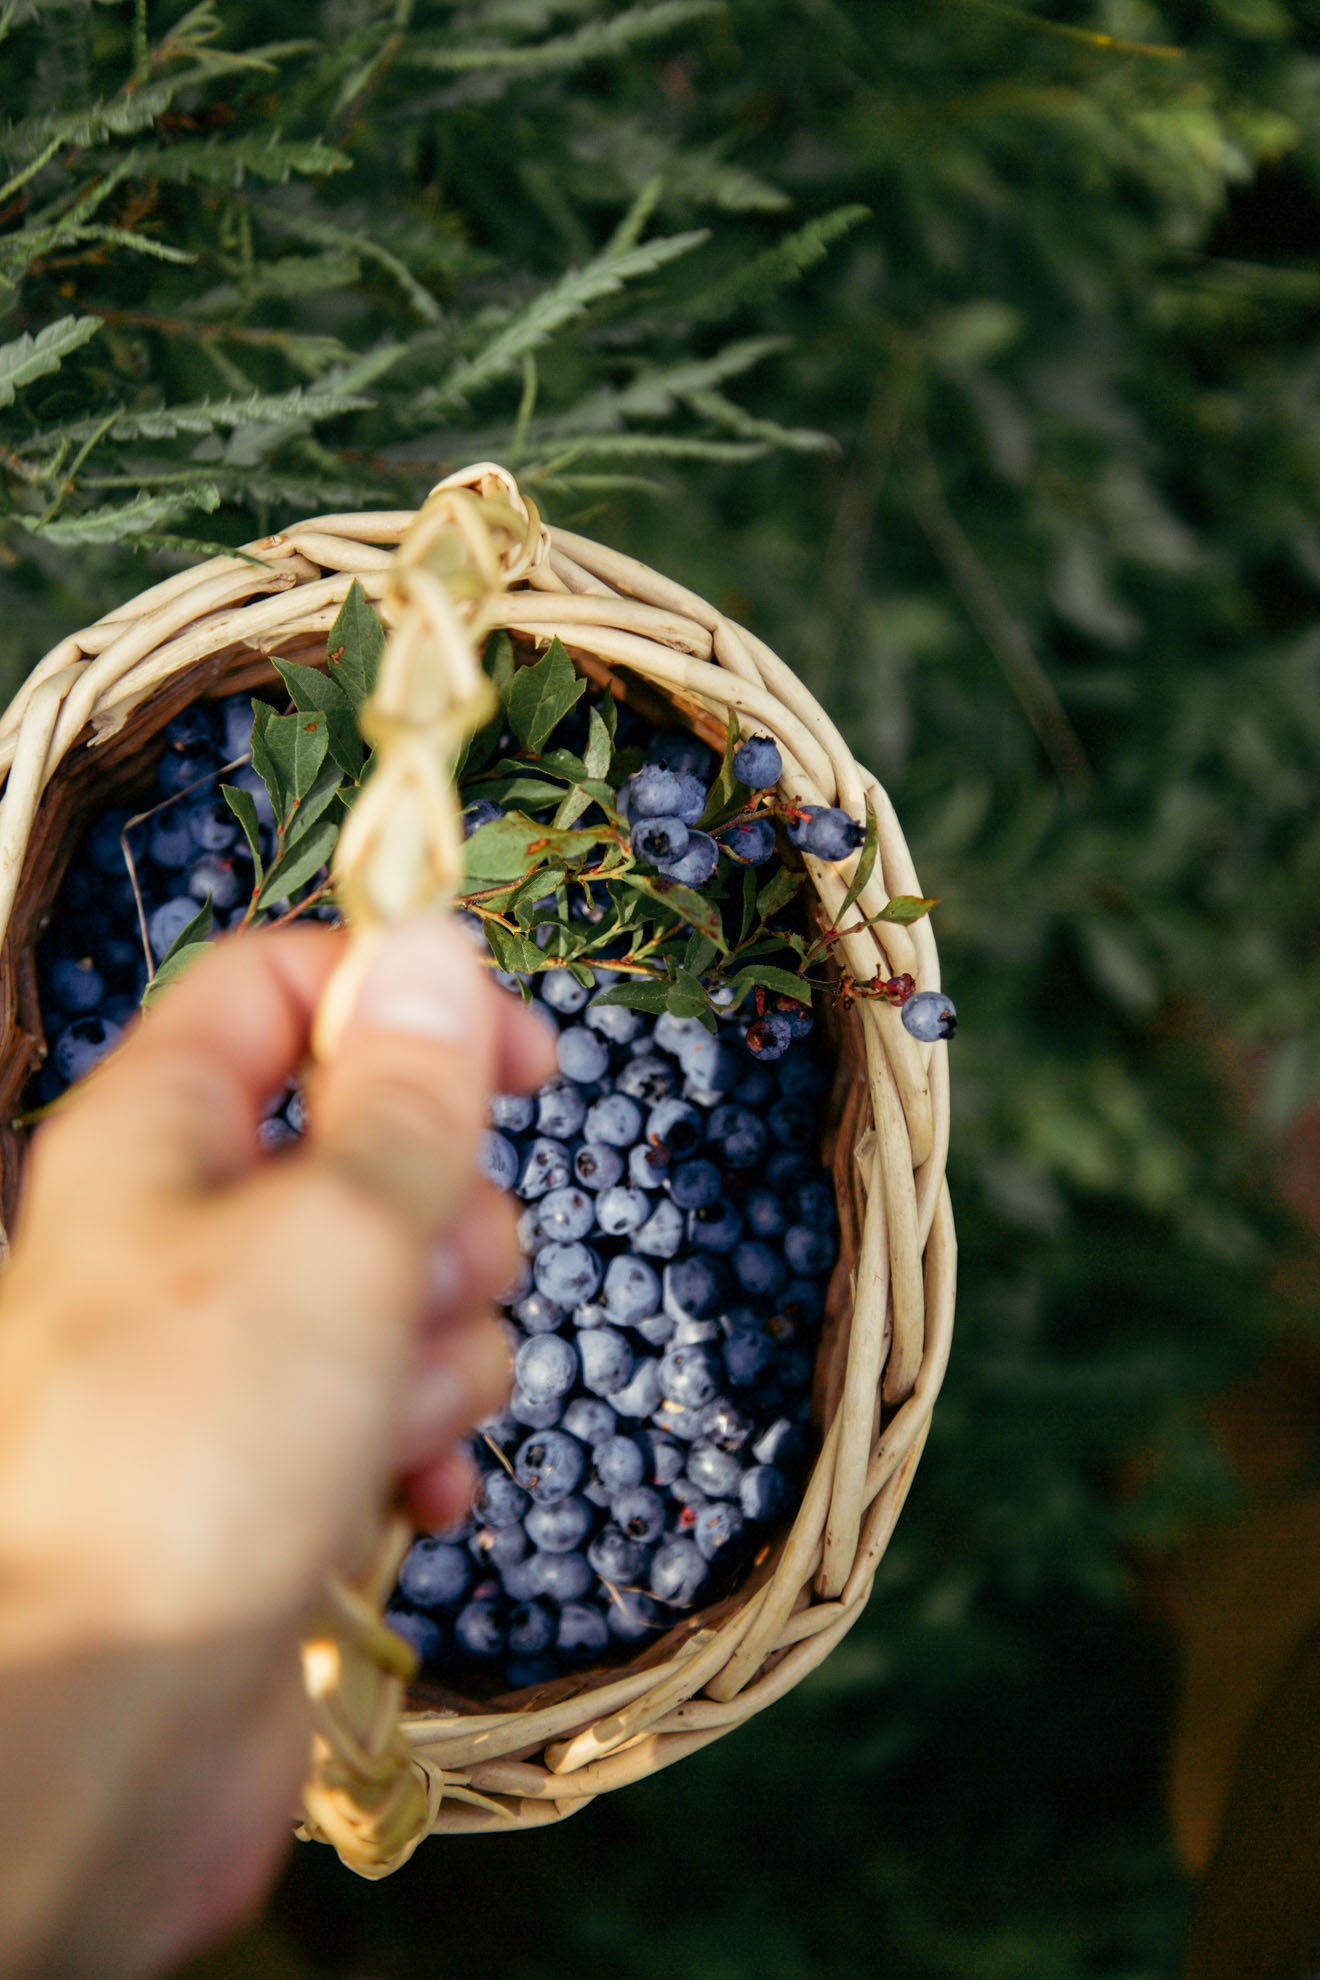 Blueberry Picking | Miss Northerner